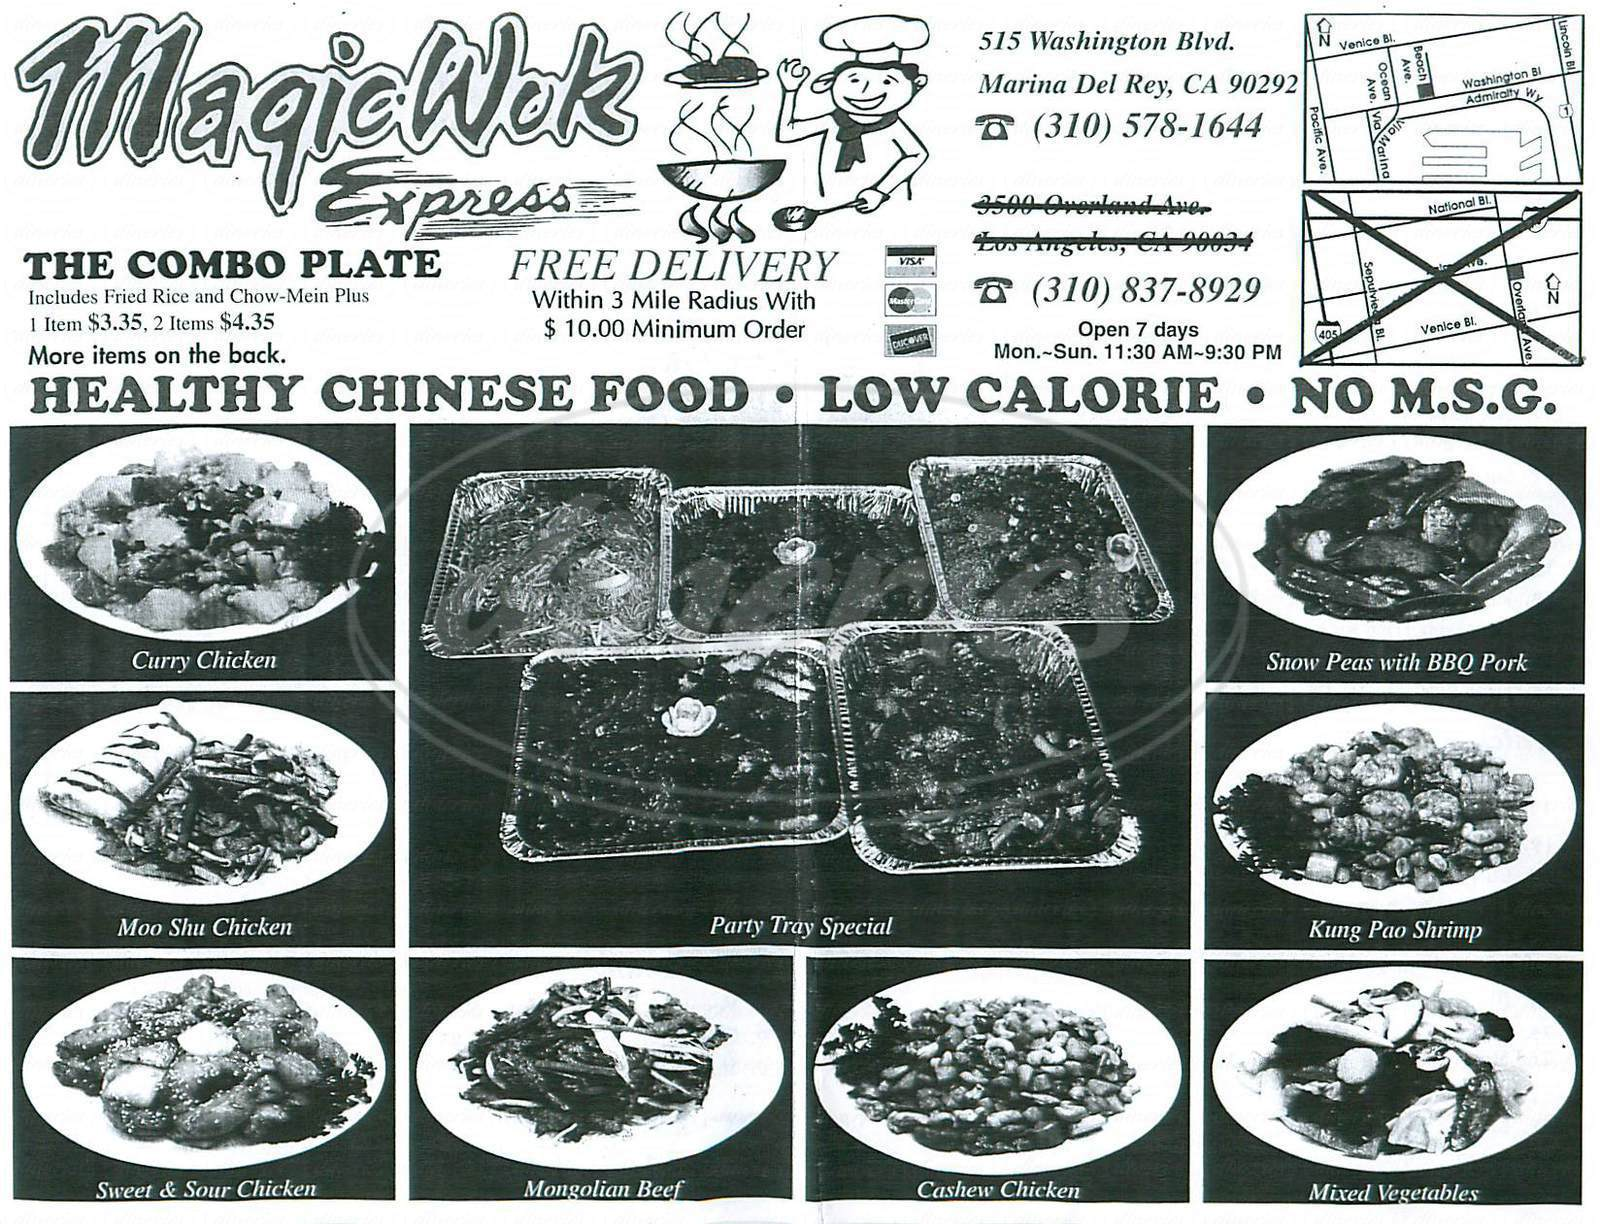 menu for Magic Wok Express